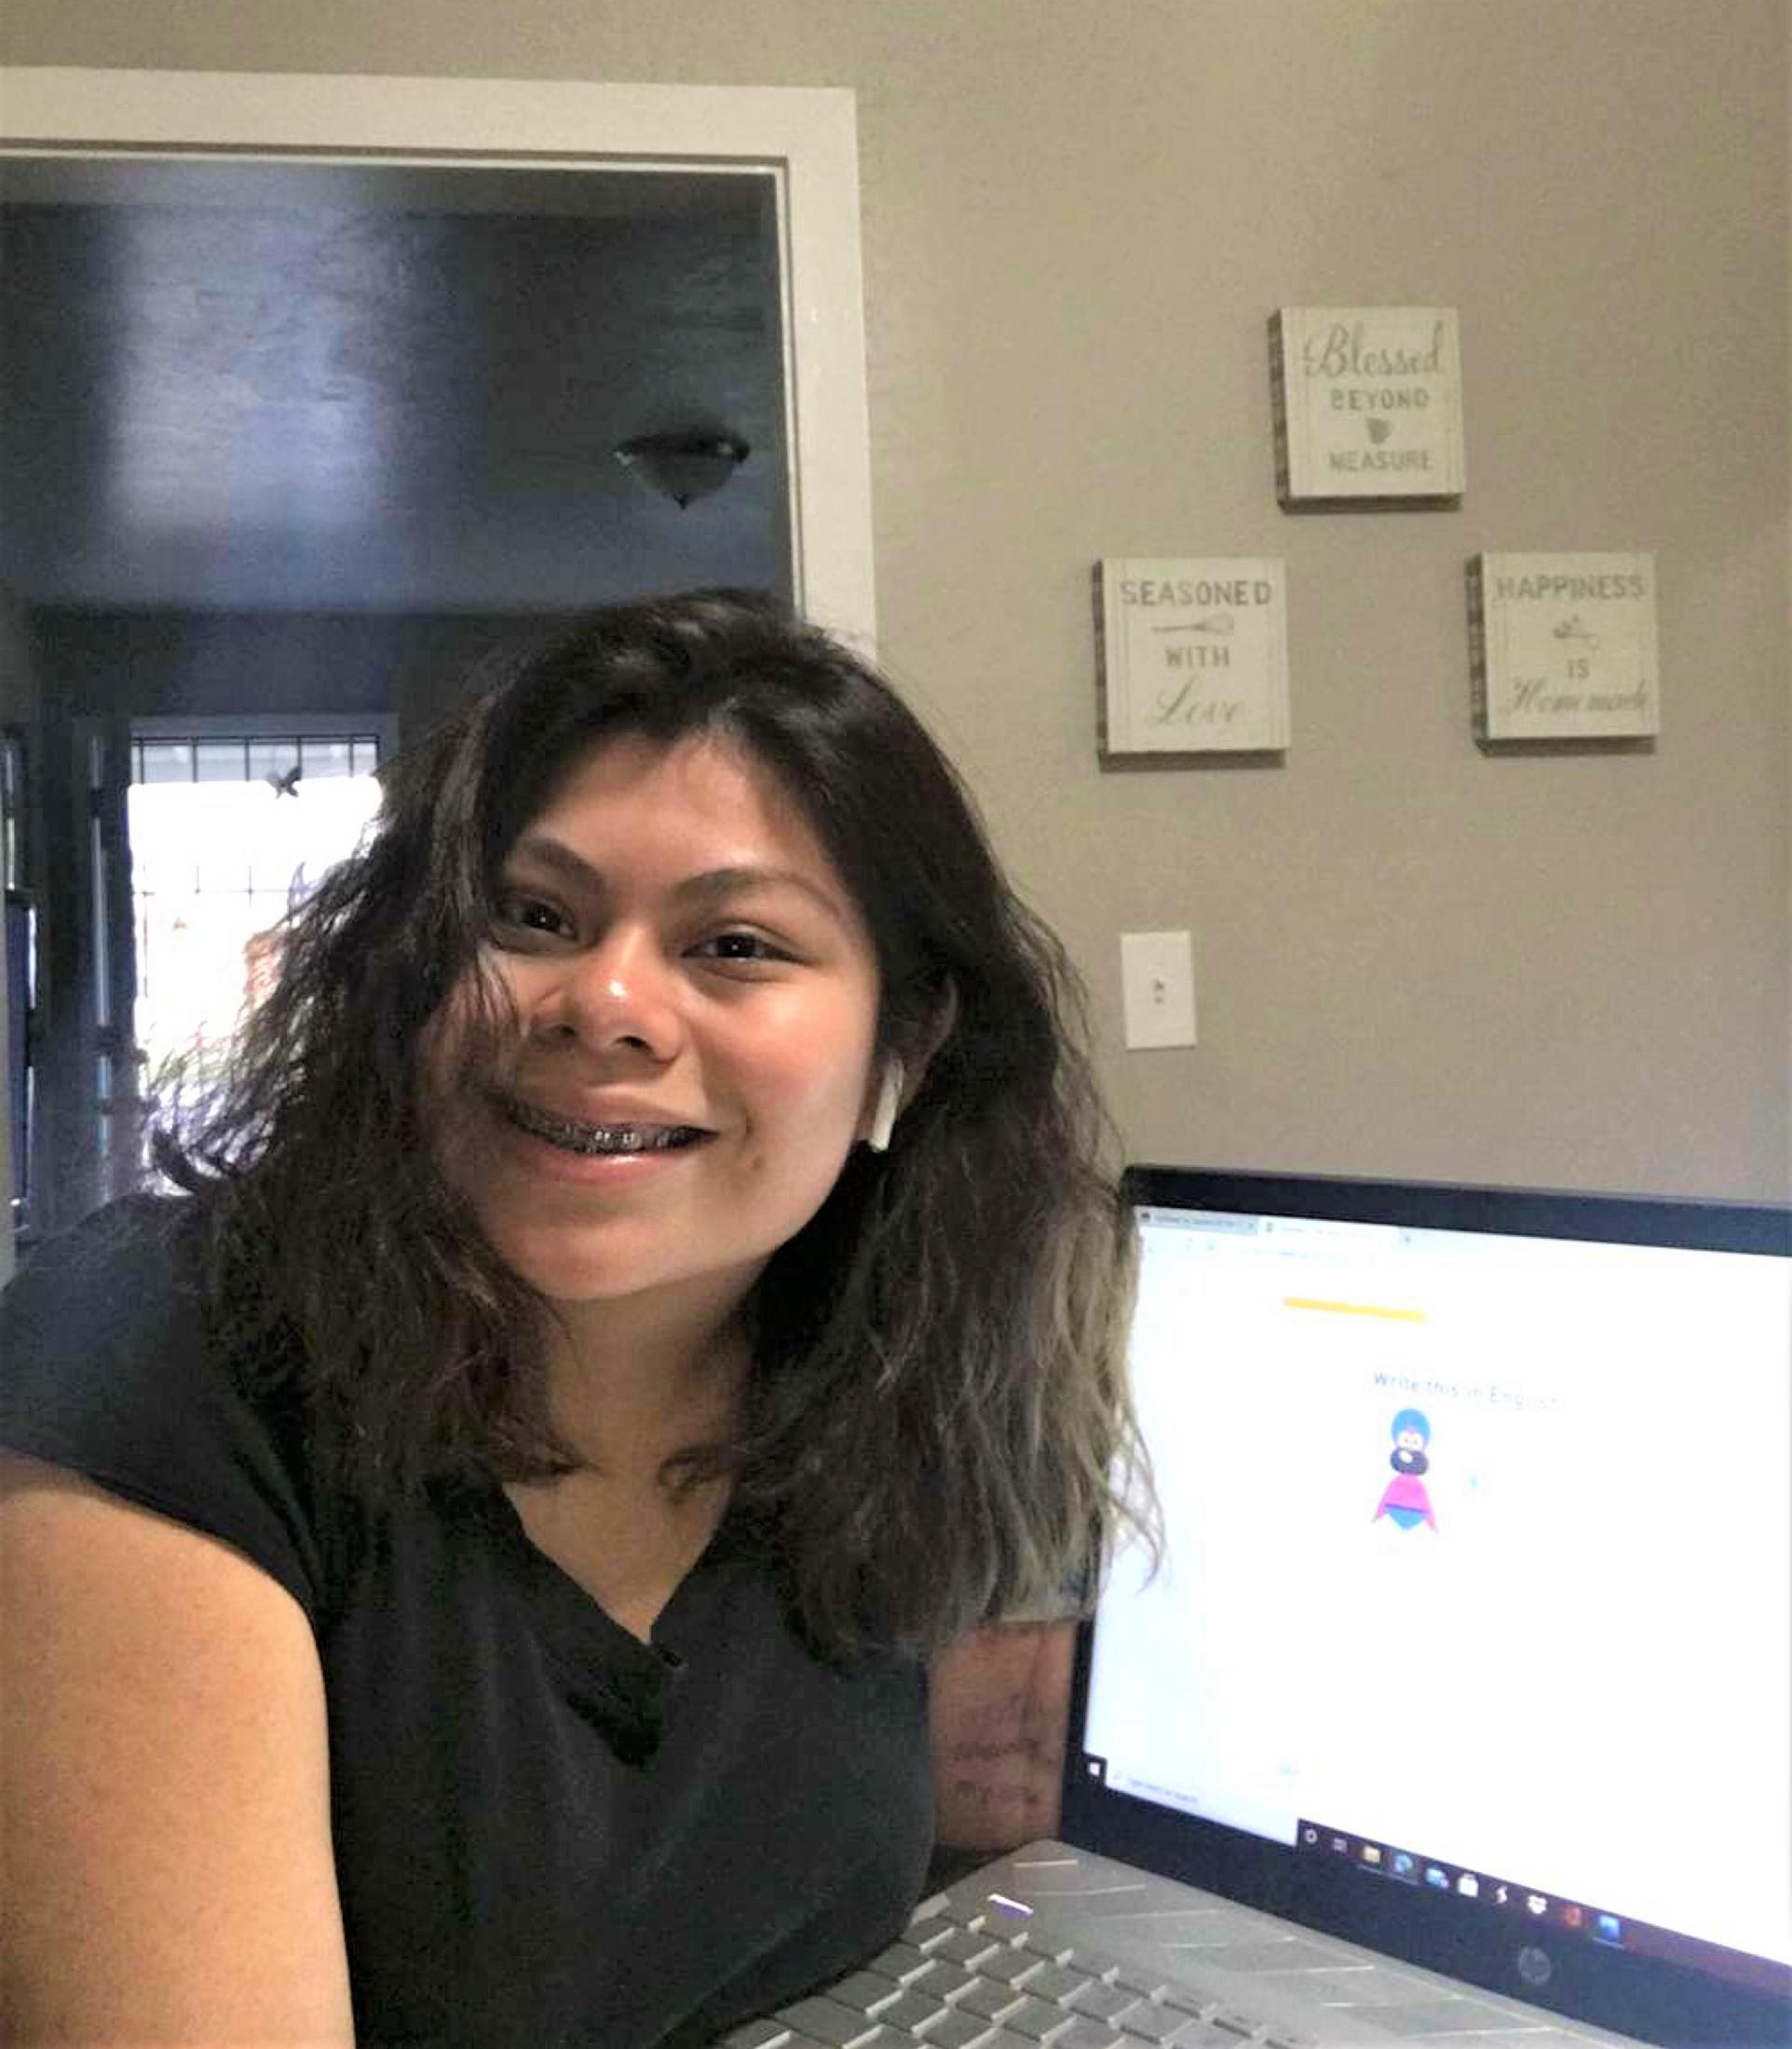 a student posing with their computer in their distance learning workspace